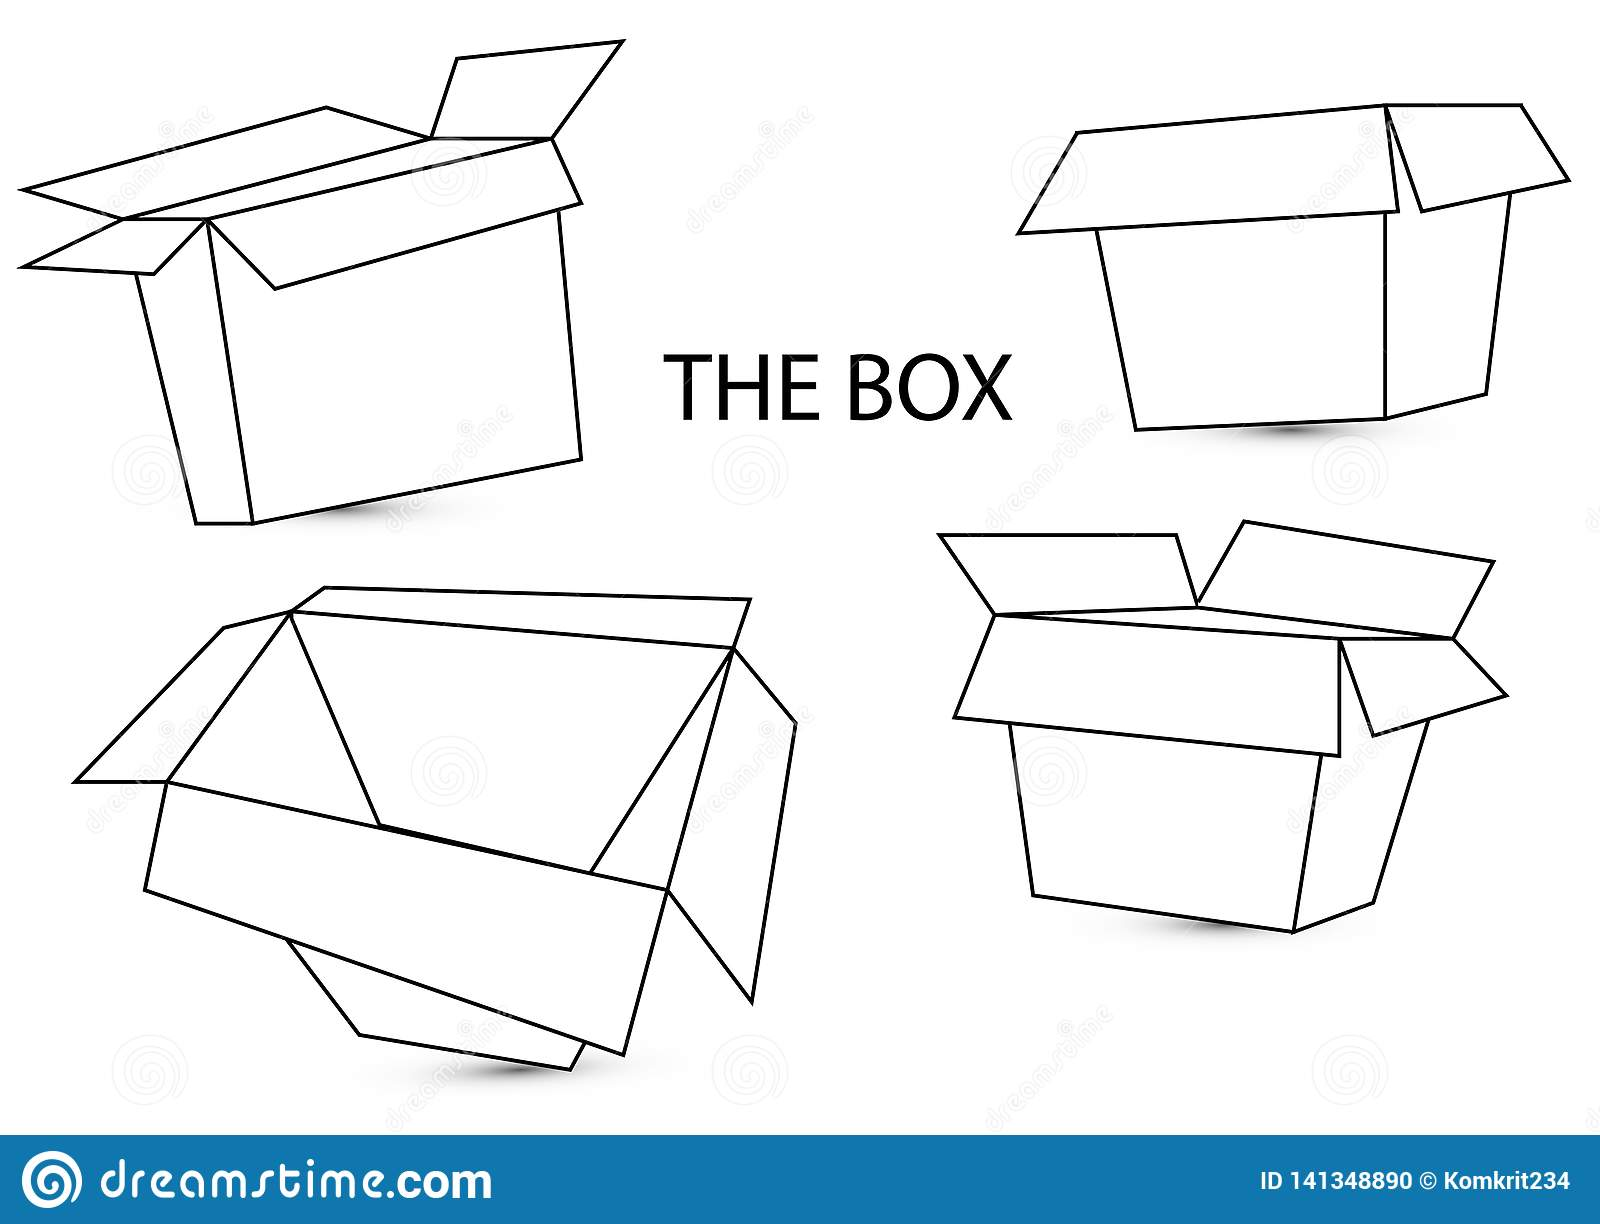 hight resolution of 3d box dimension with the top and side view on white background with shadow